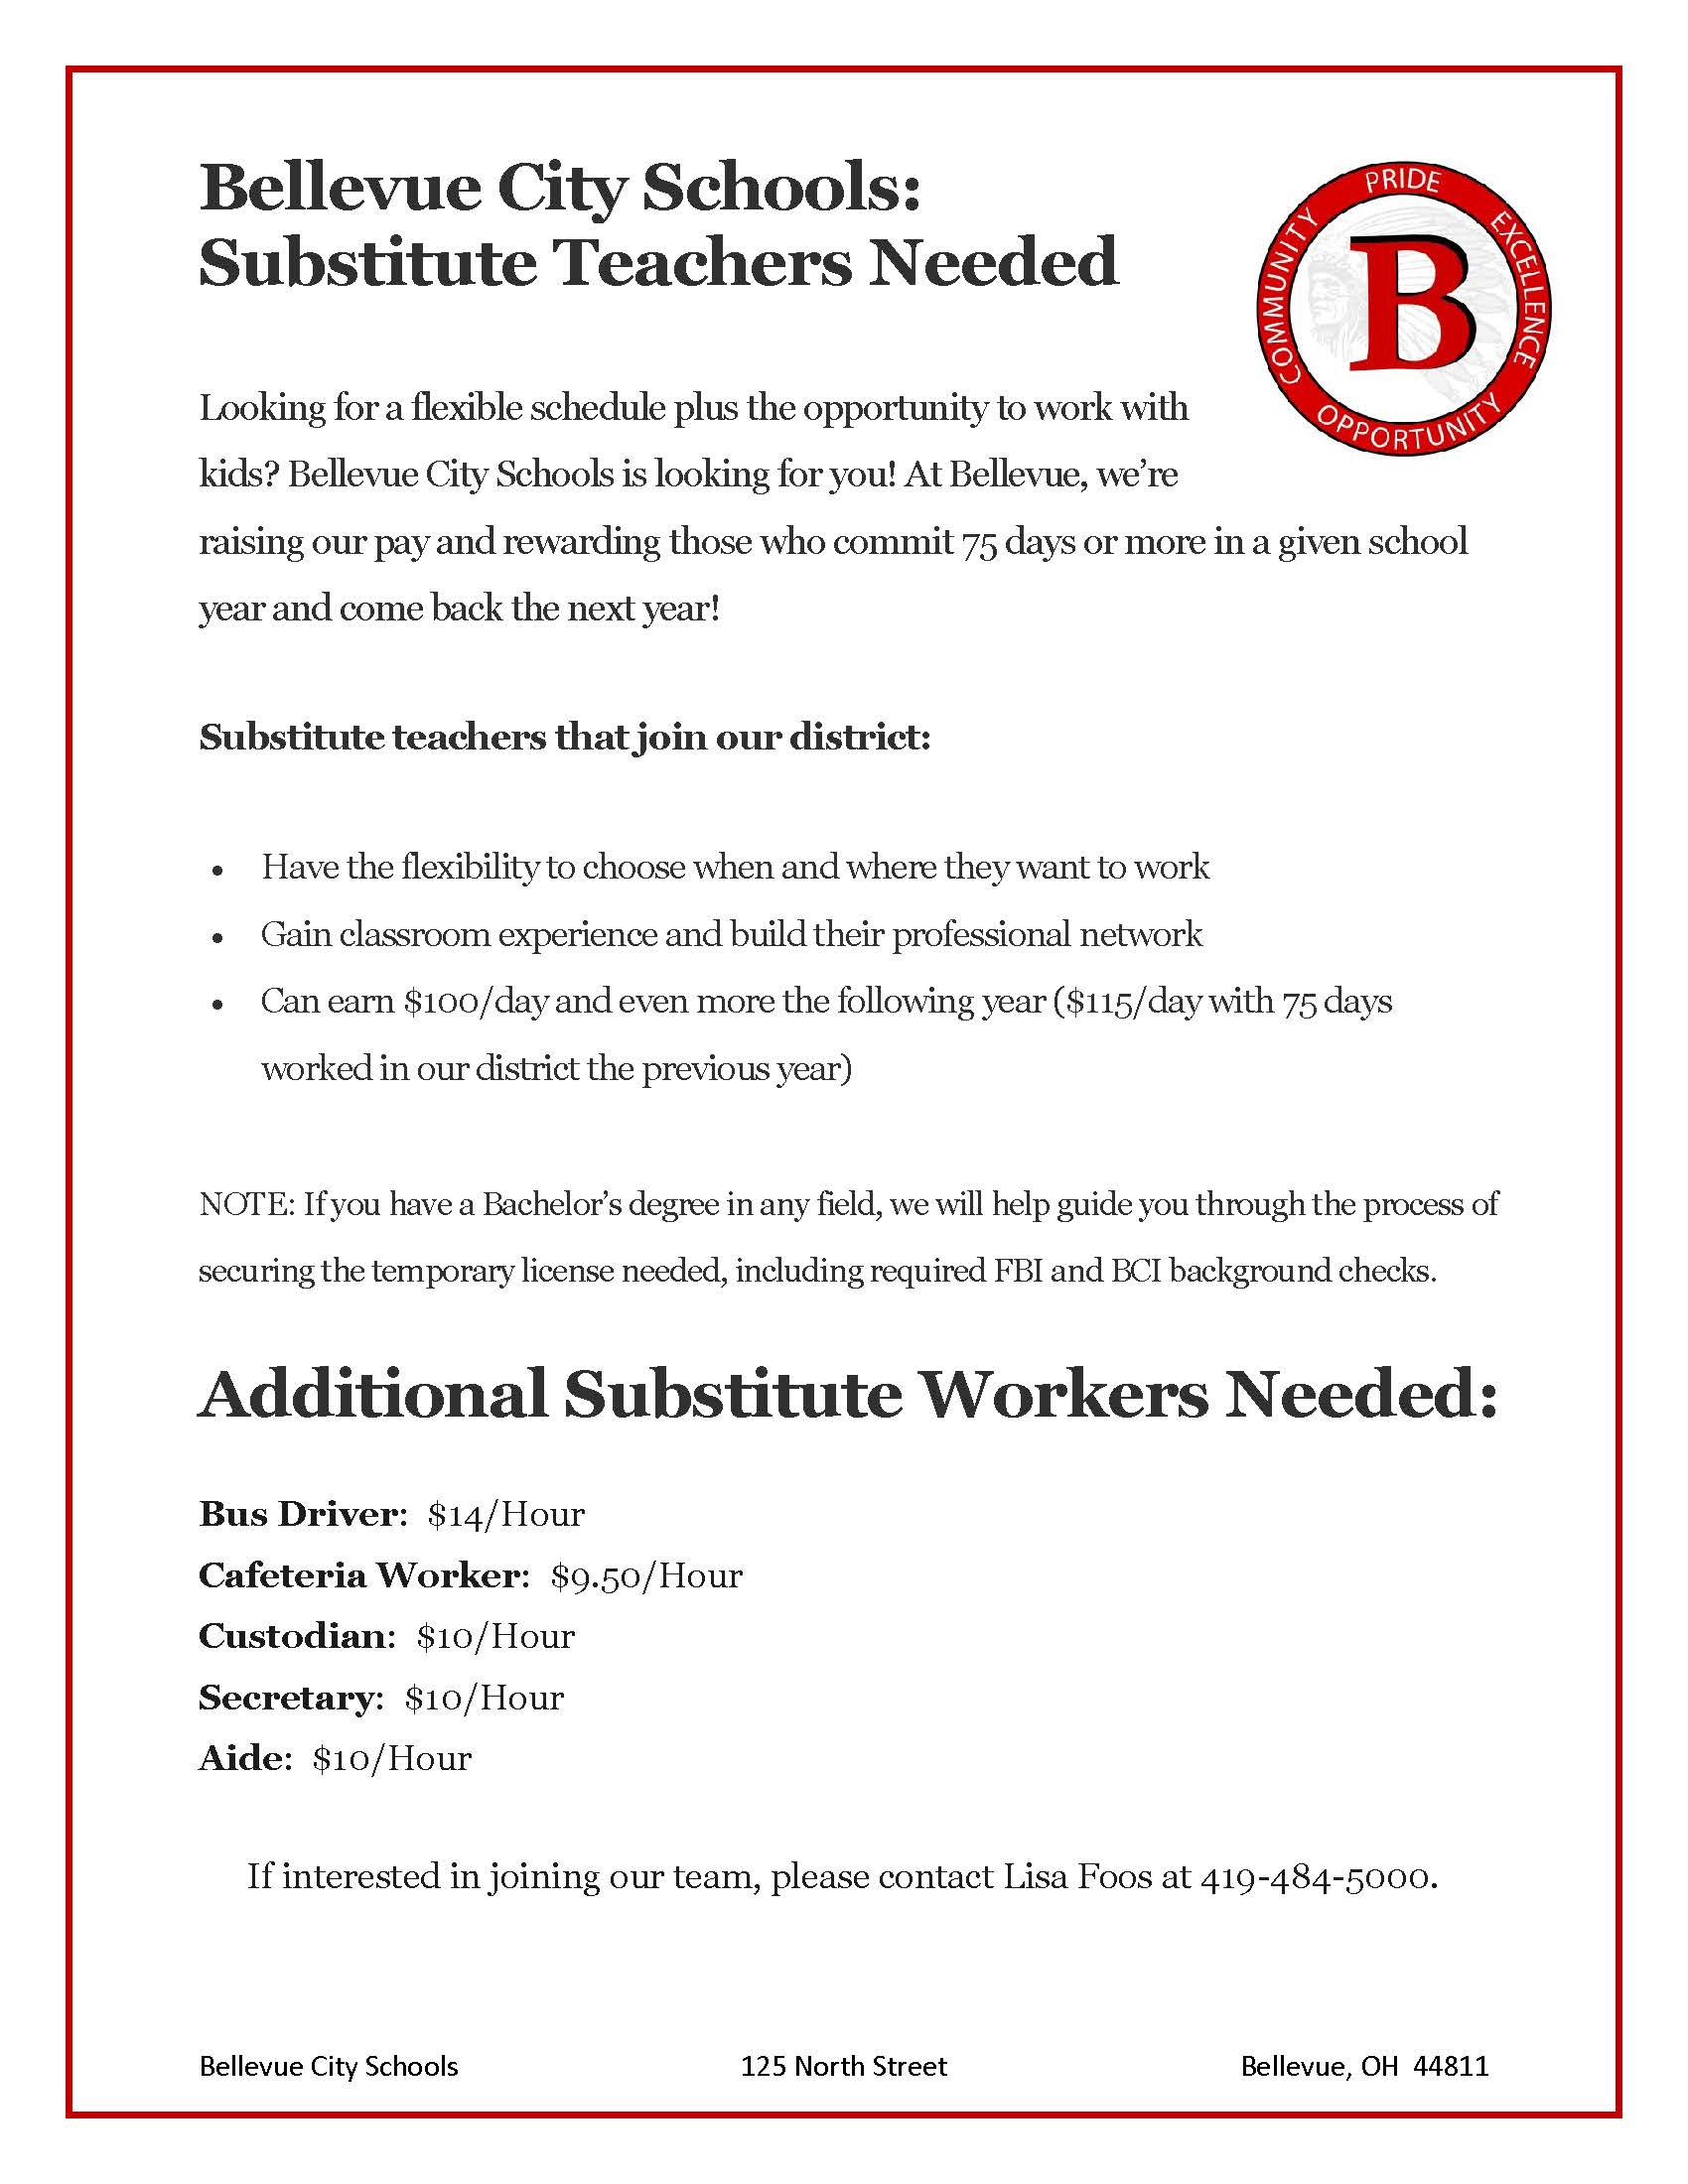 Substitute Teacher and Support Staff Needed - Link to PDF